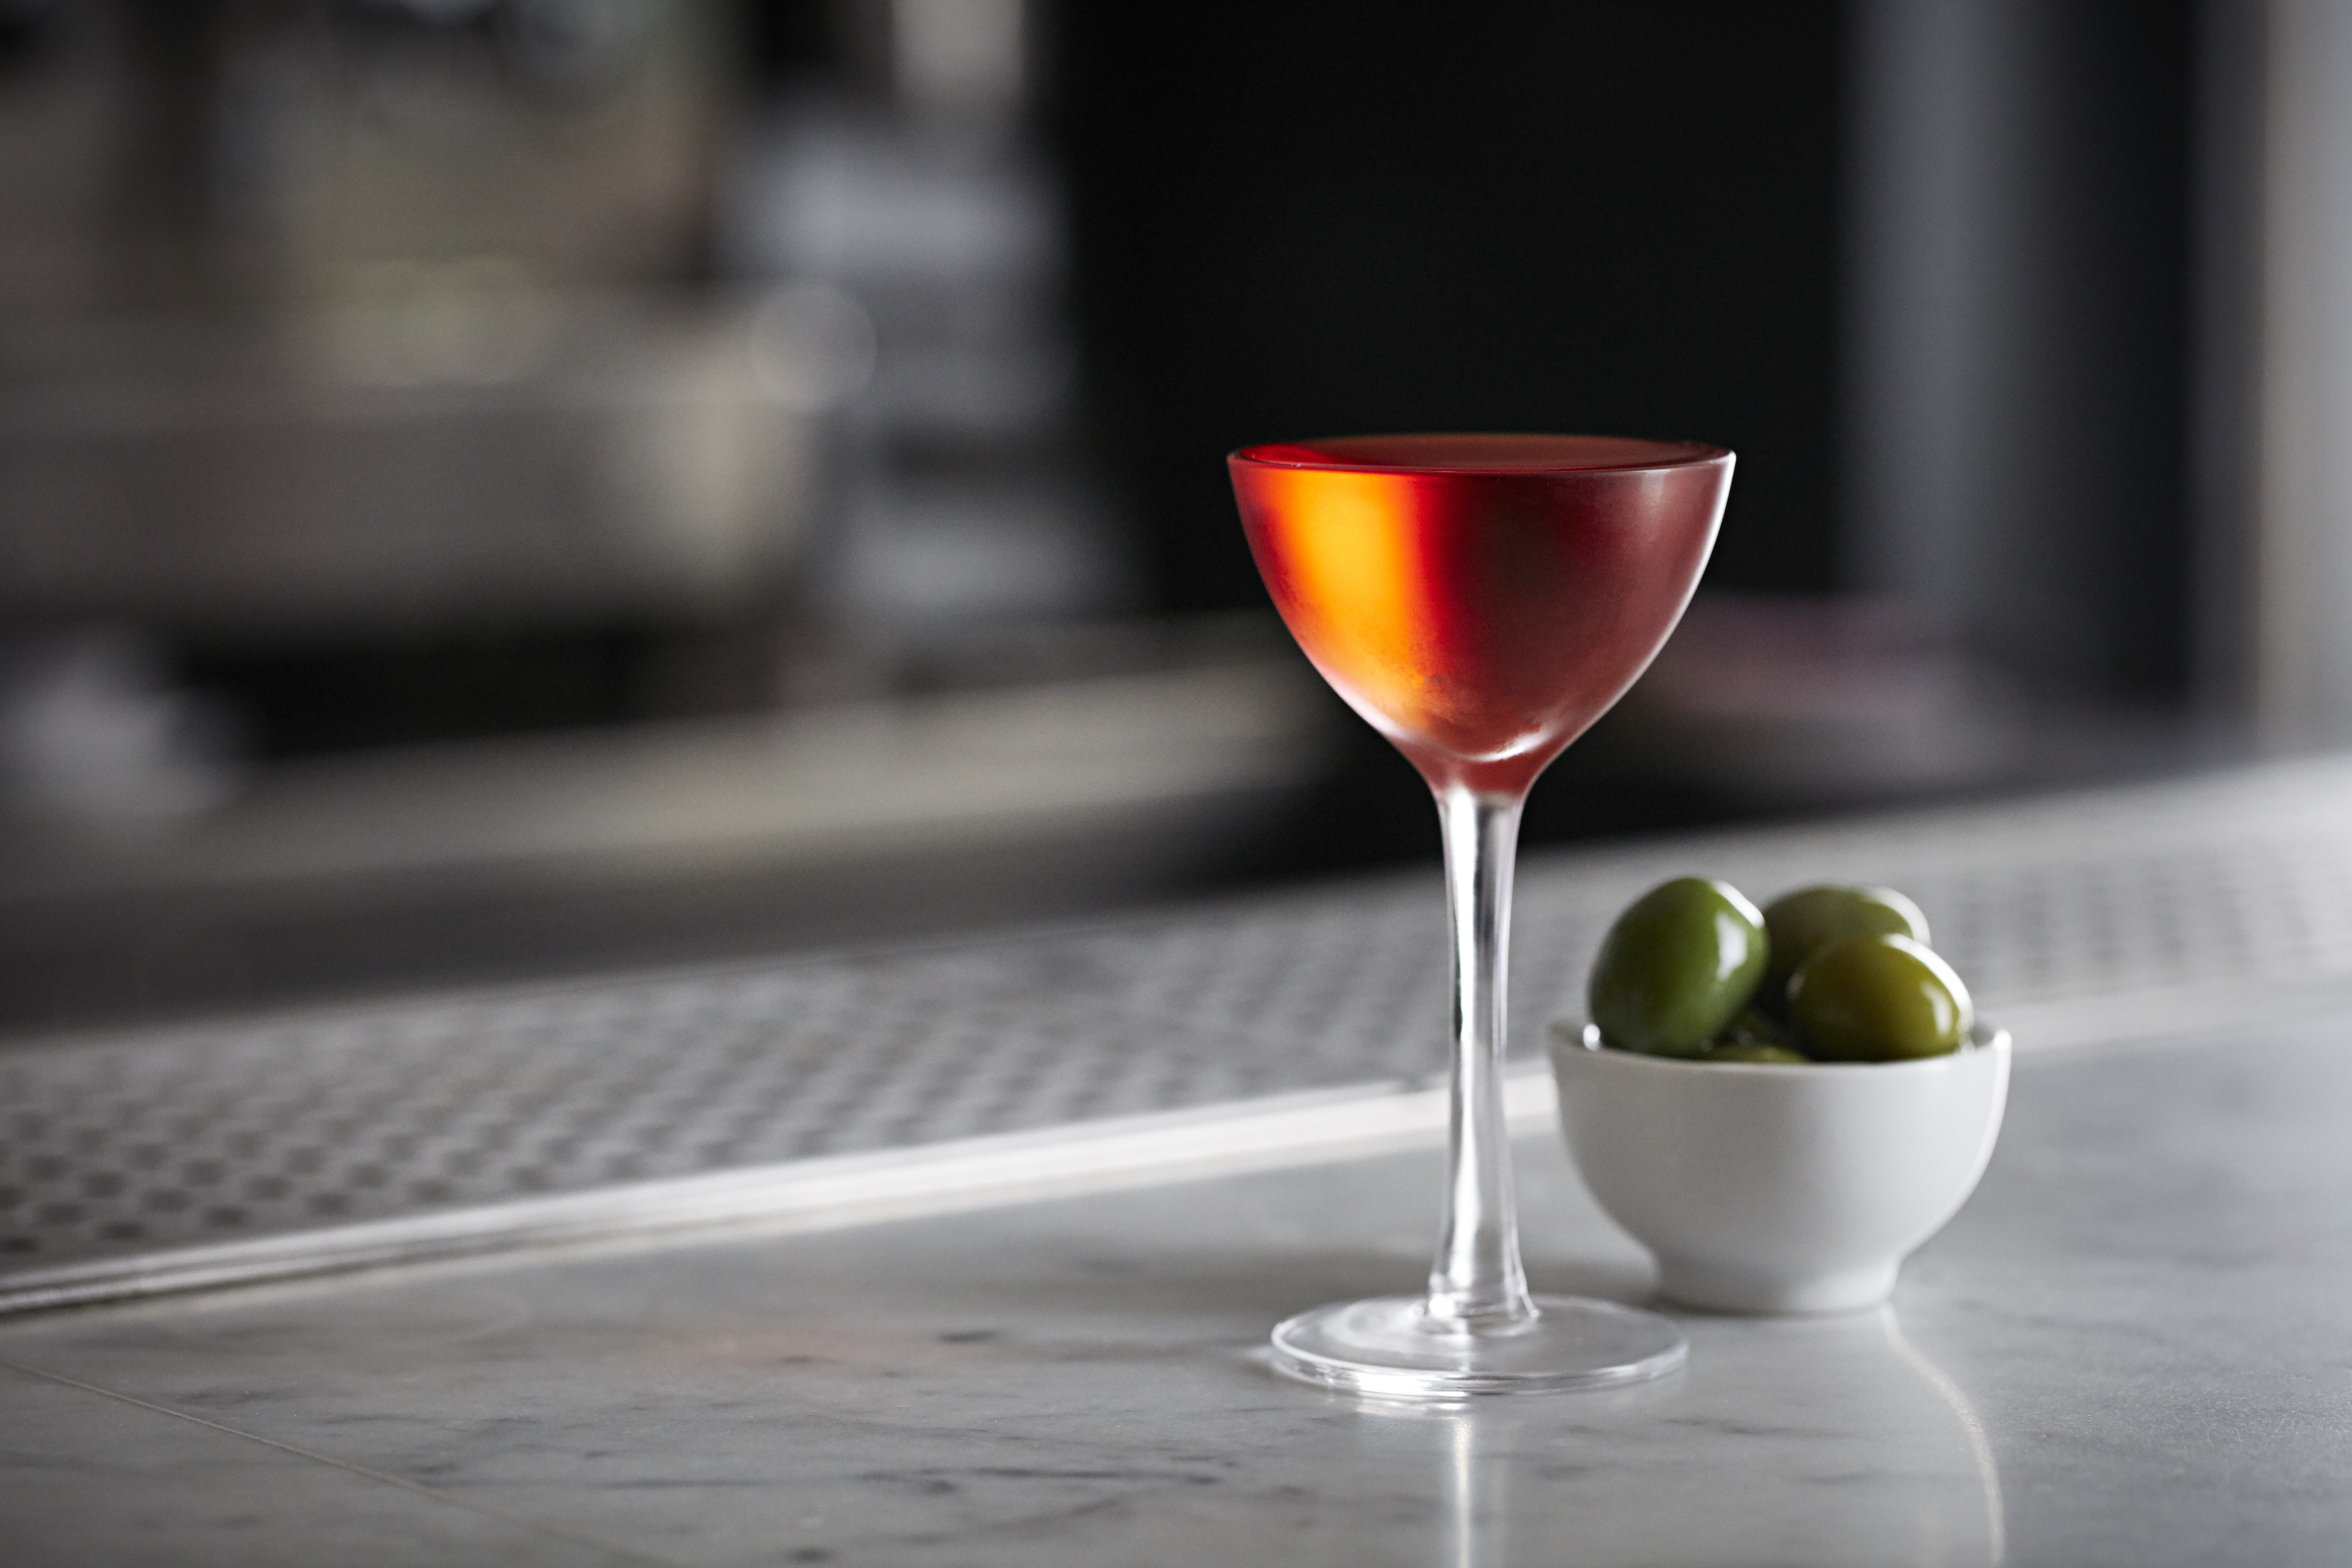 House negroni and olives at Bar Termini Centrale